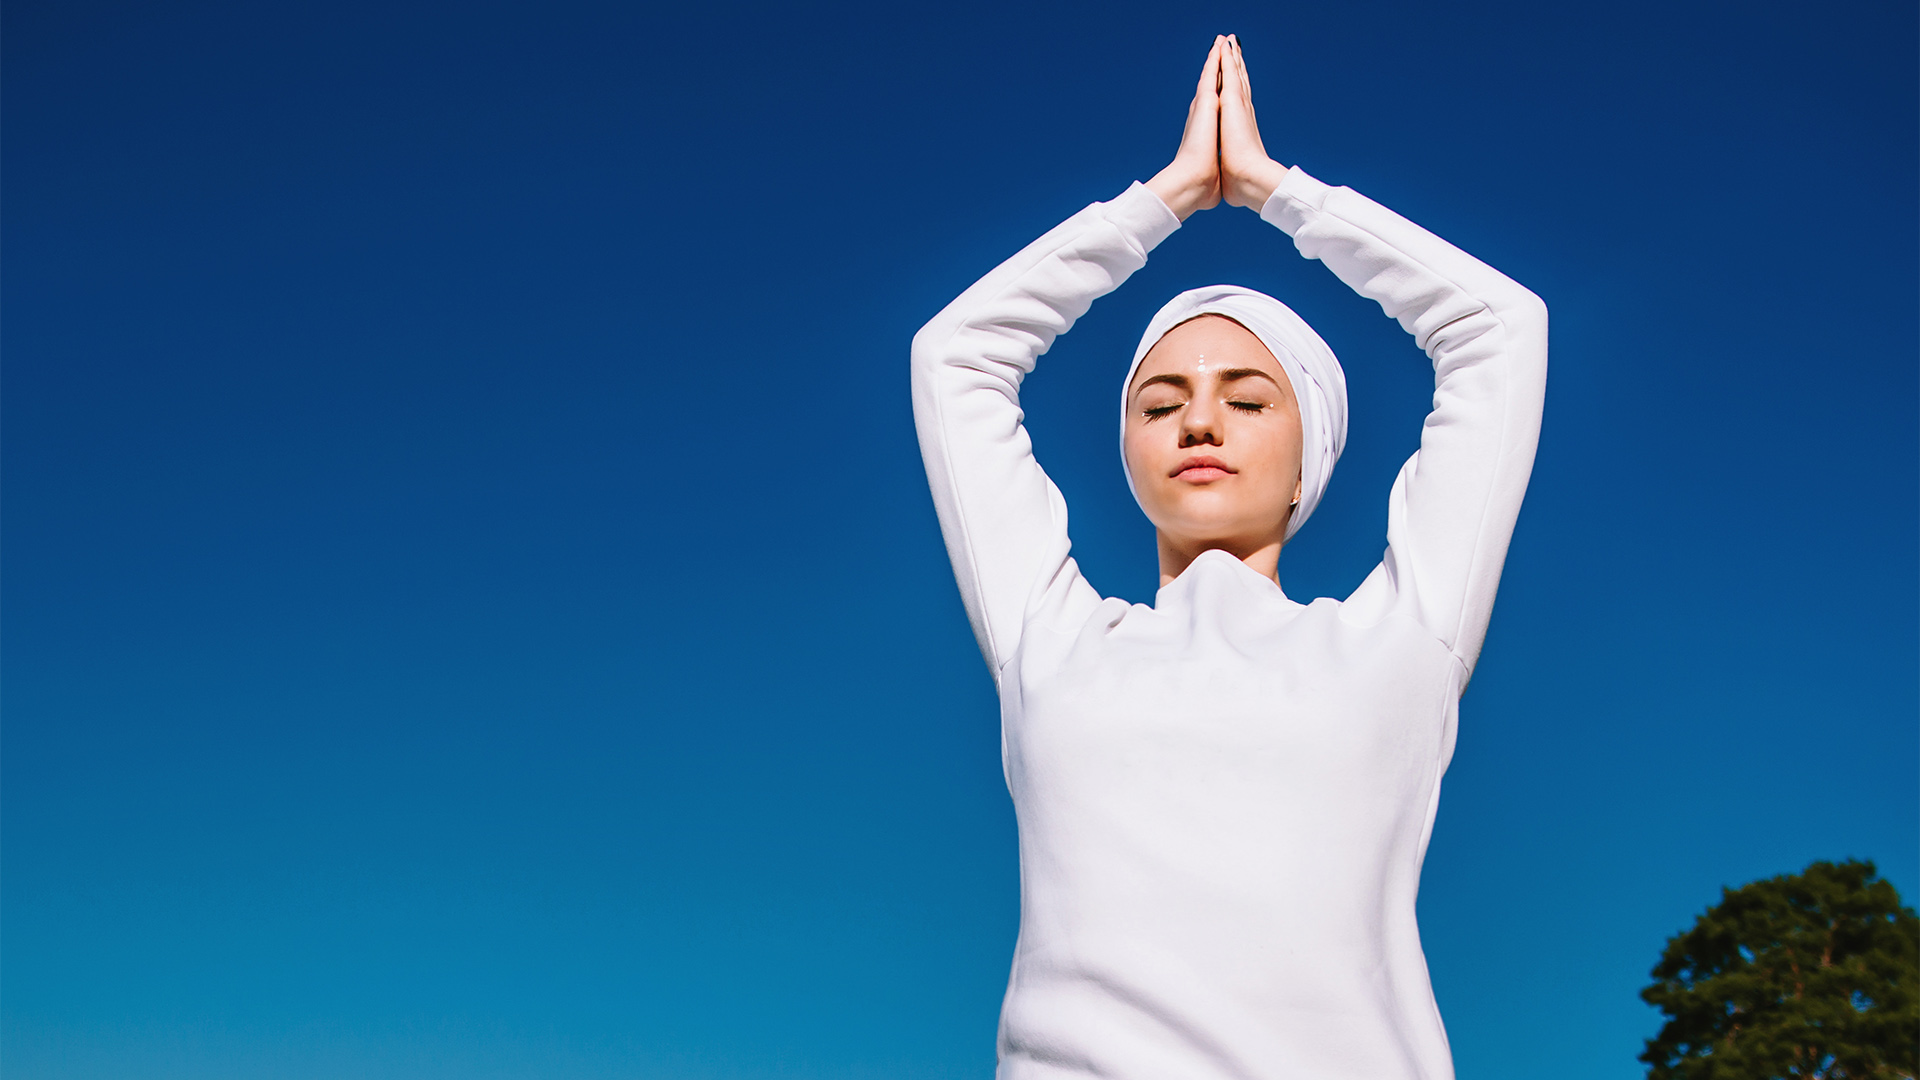 5 things that mindful people do differently